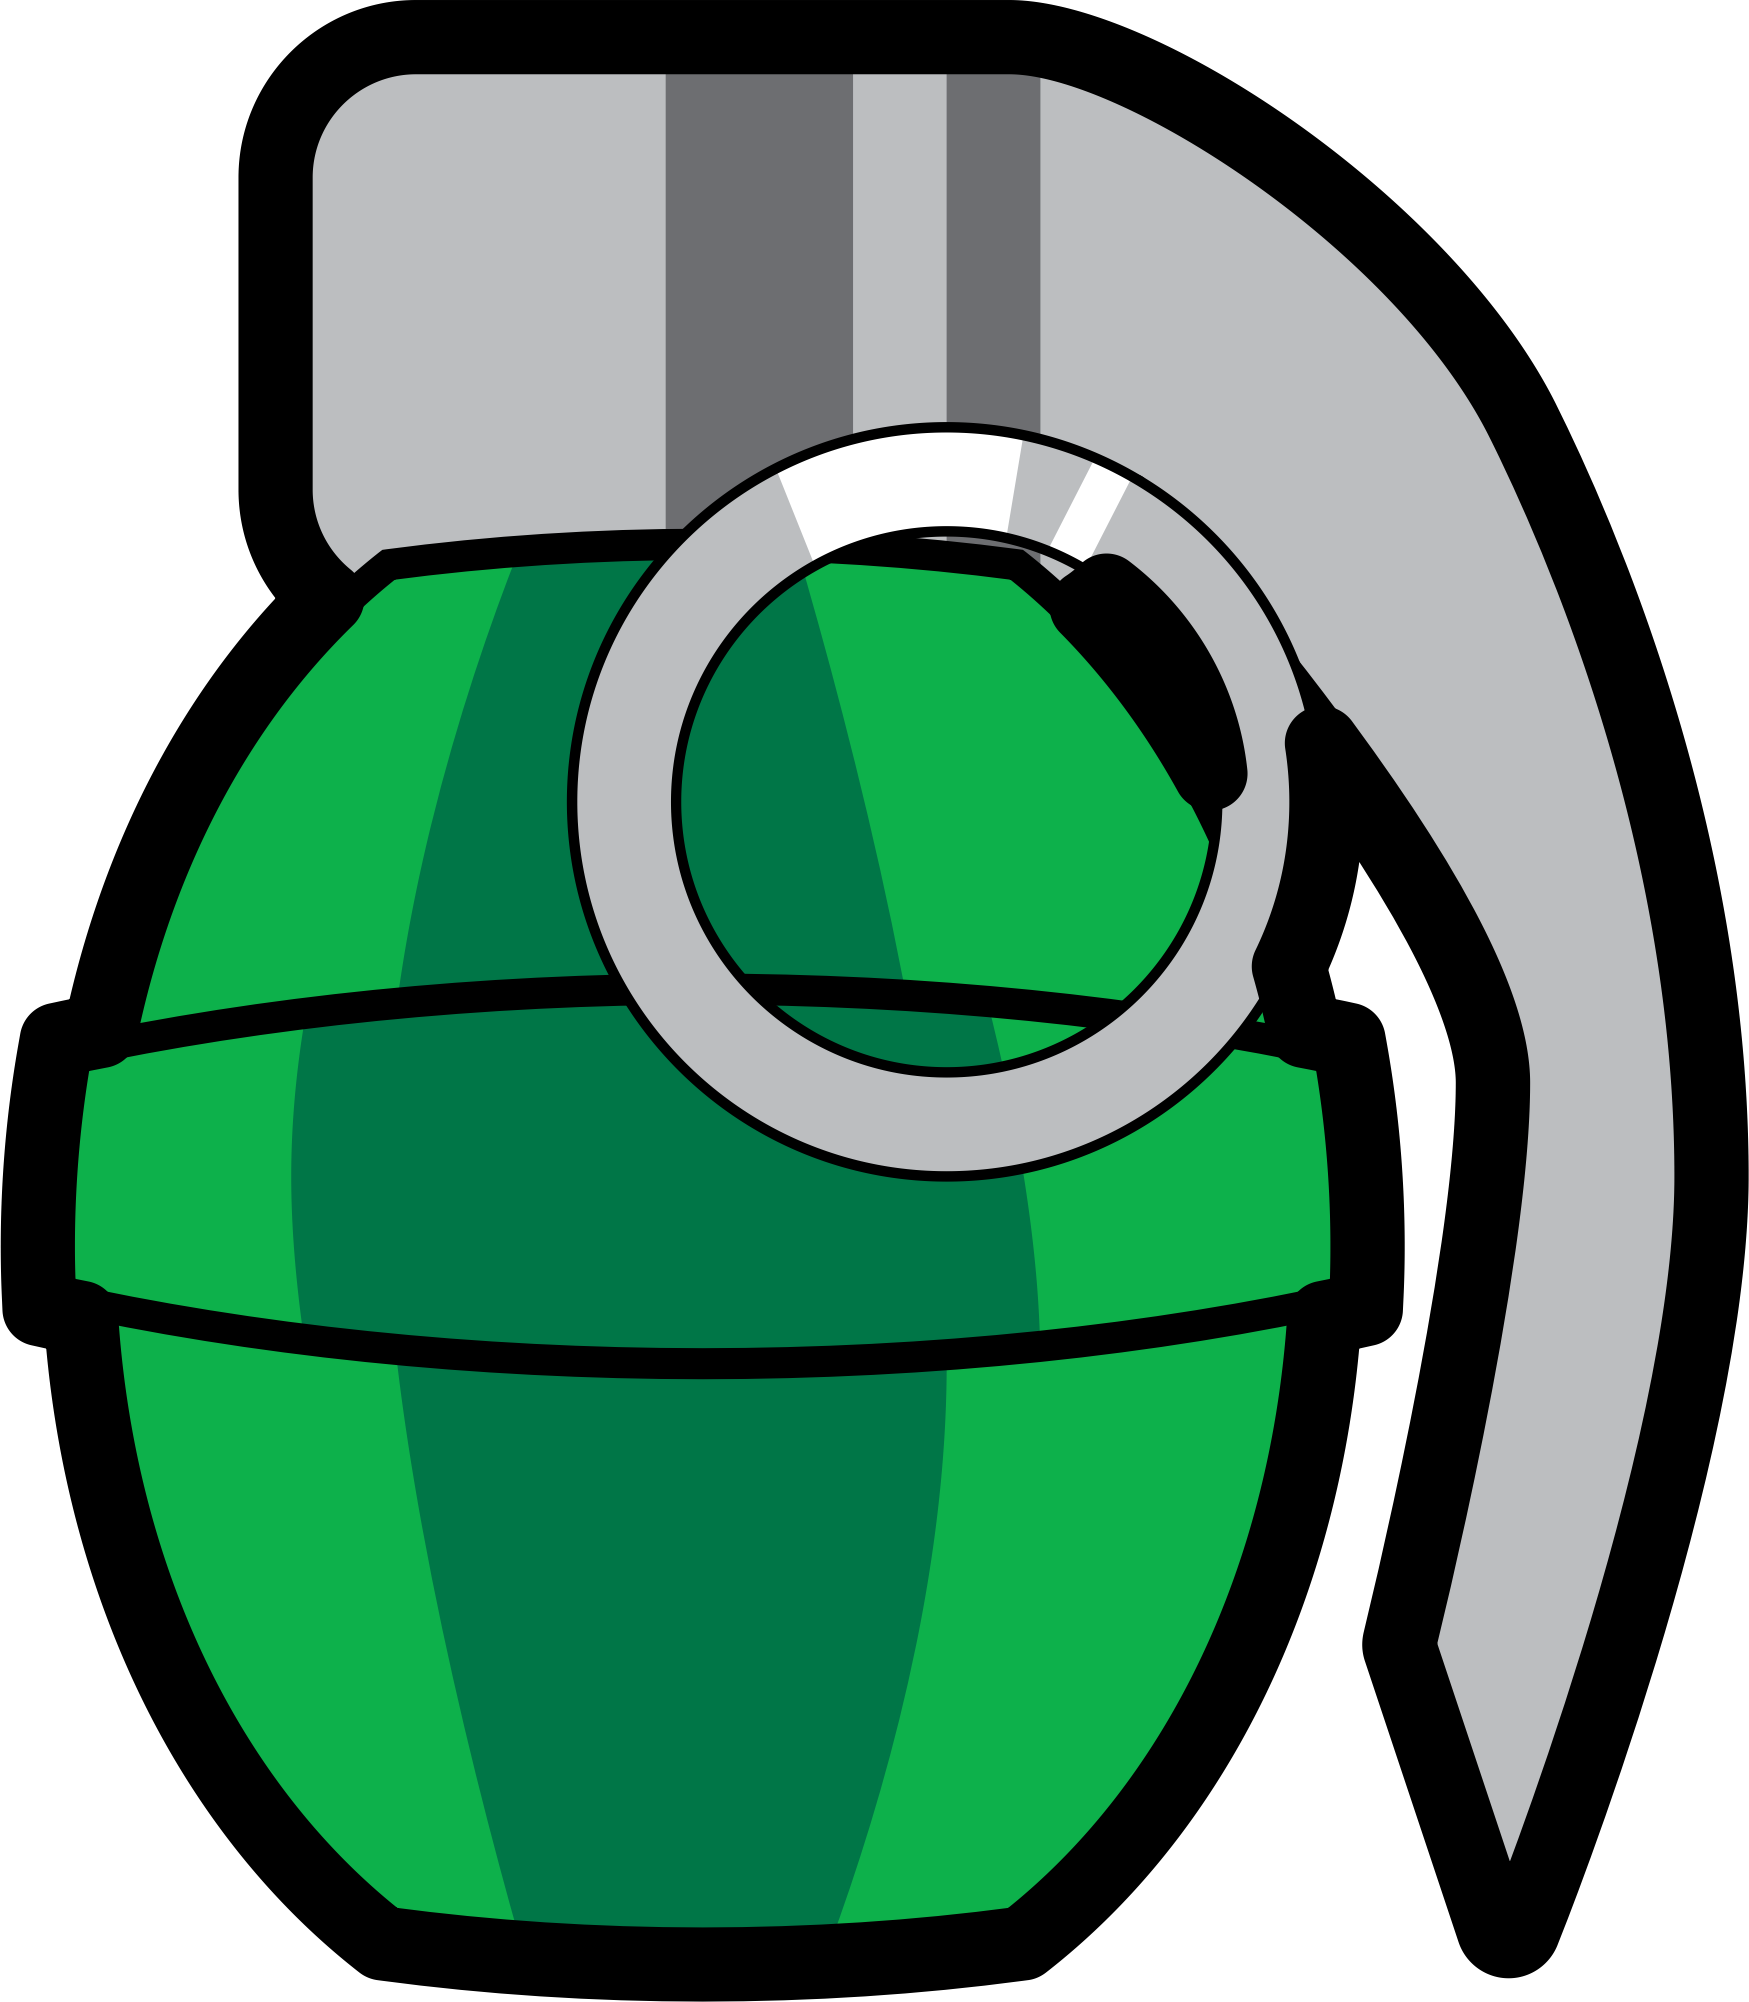 Grenade by jamiely